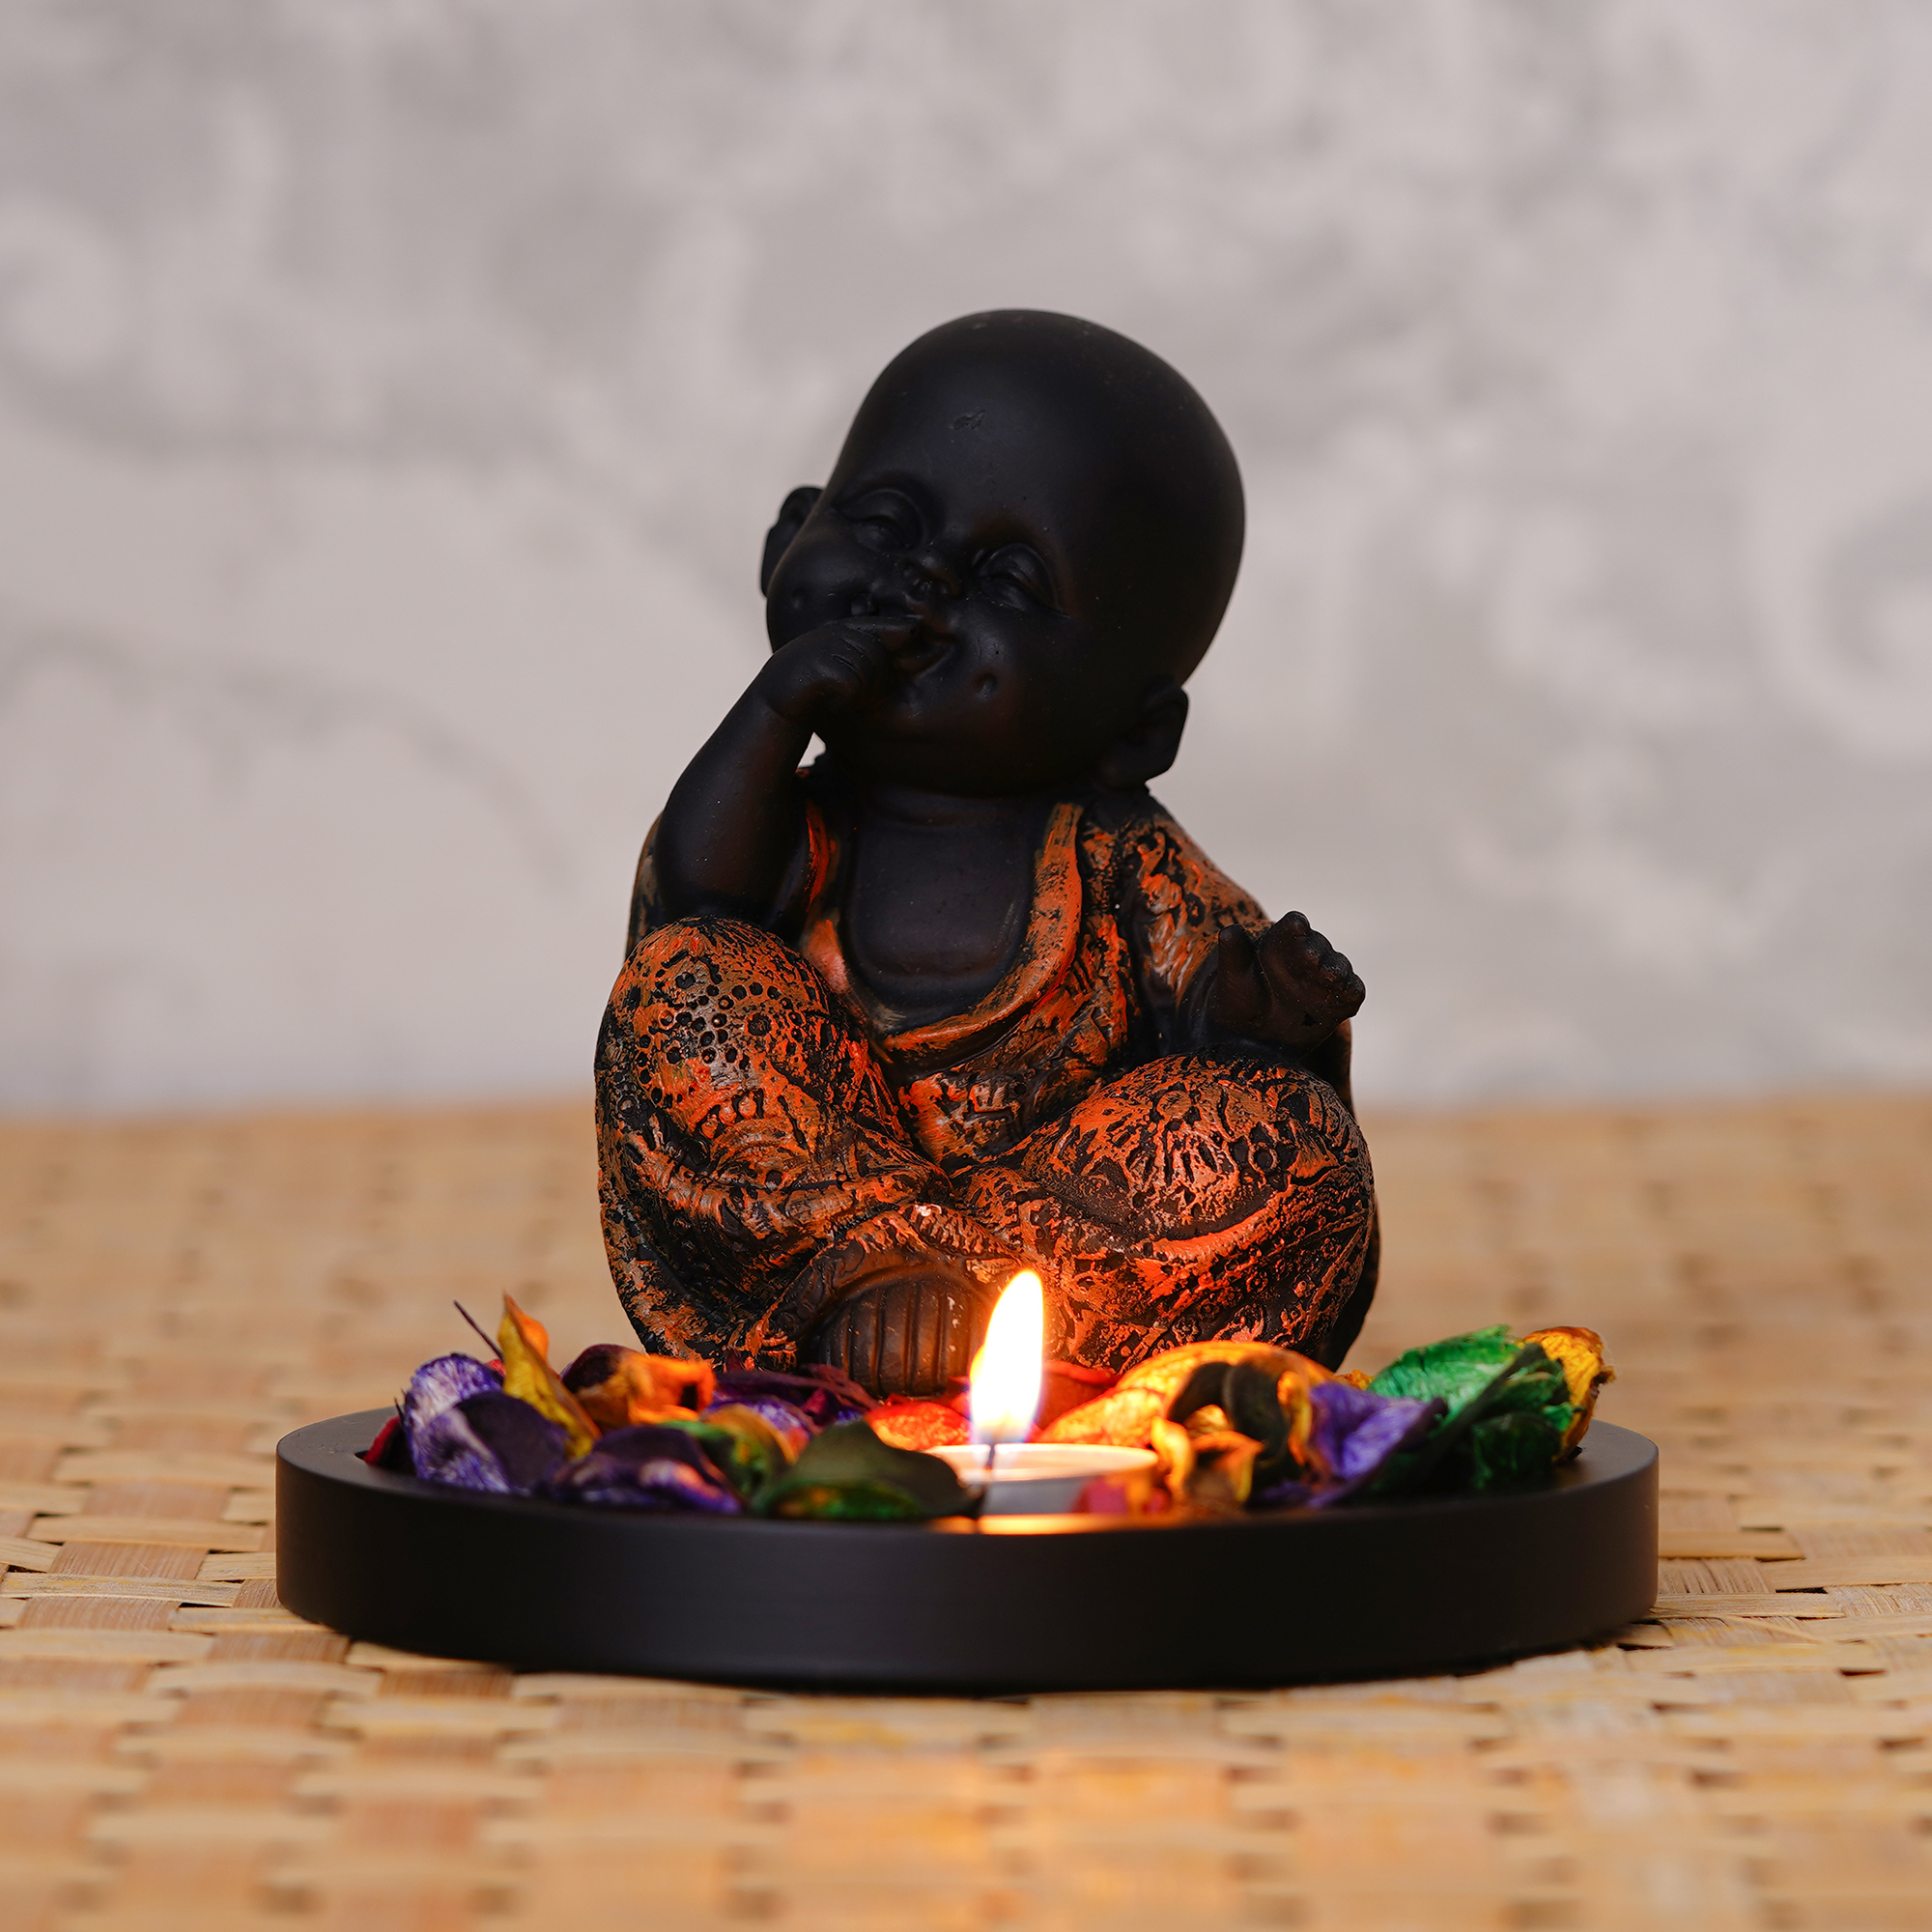 Decorative Smiling Copper Monk Buddha with Wooden Base, Fragranced Petals and Tealight Indian Home Decor